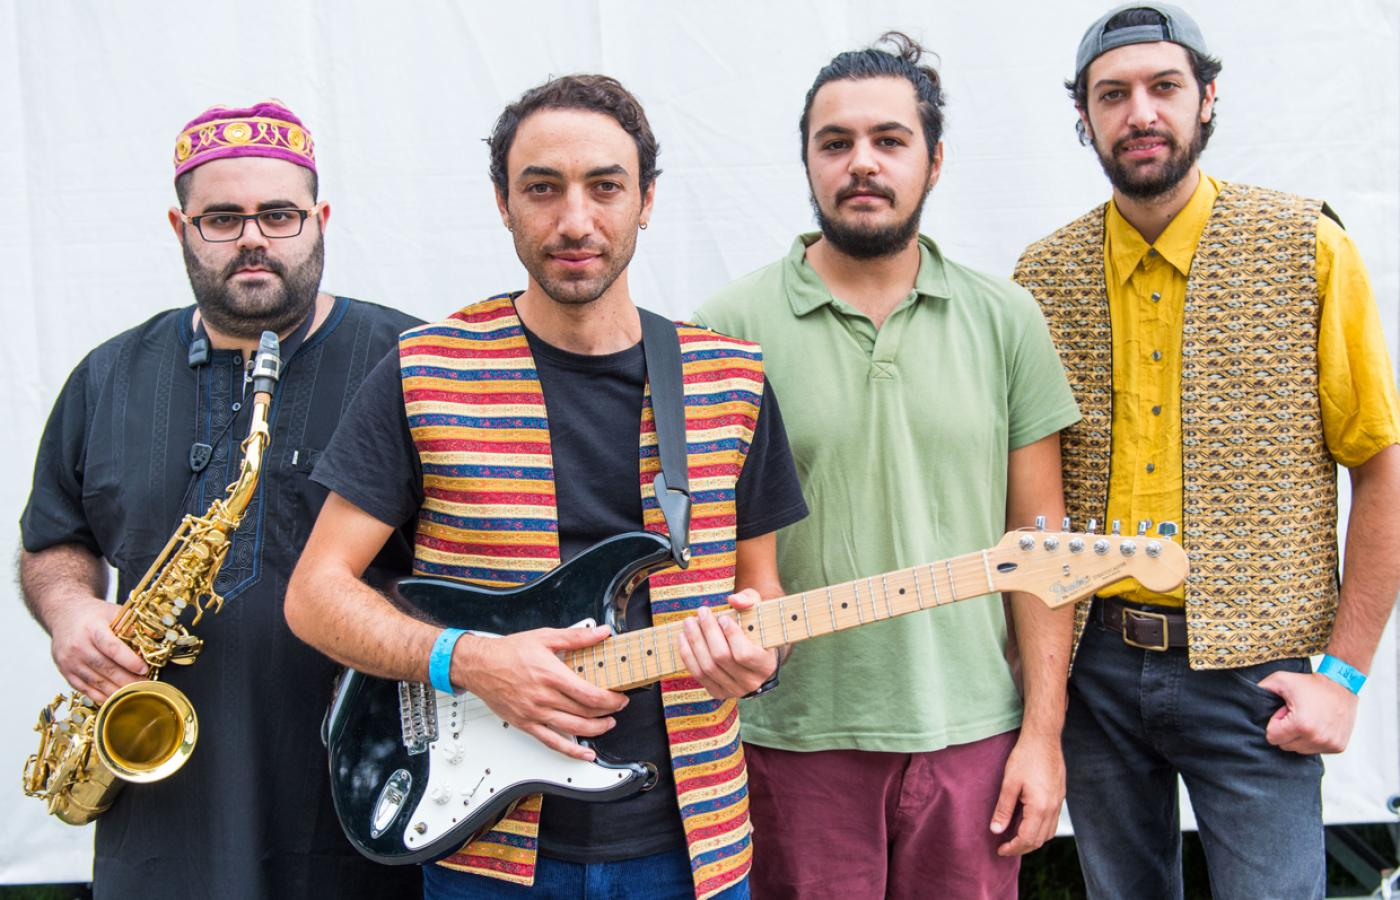 Straight out of Golan: The roots rockers bringing Arab